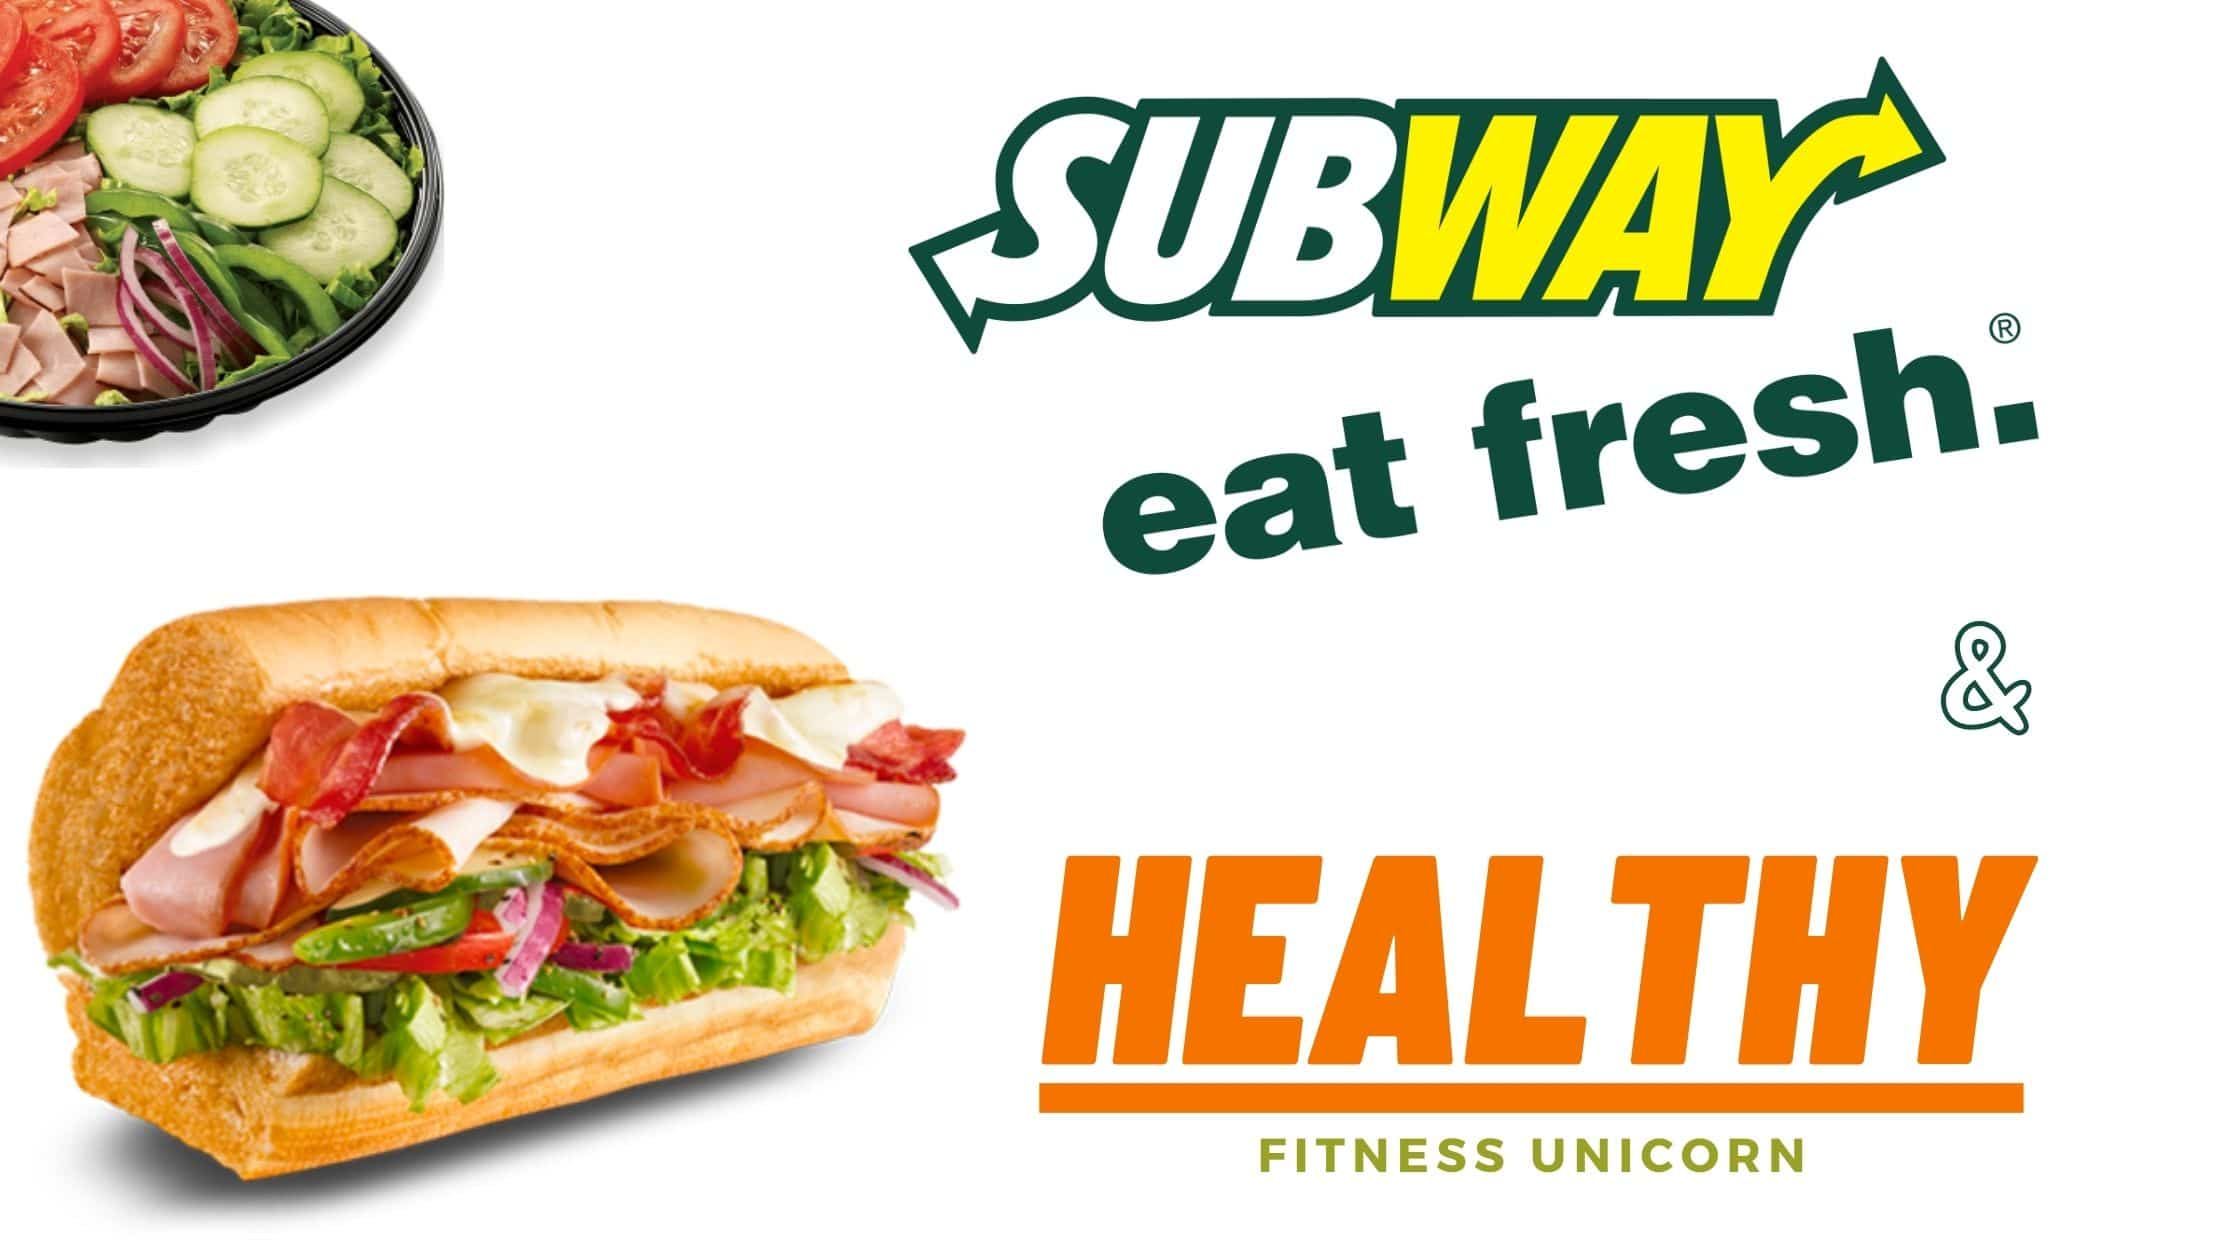 Subway Low Calorie Subs The Ultimate Guide For 2020